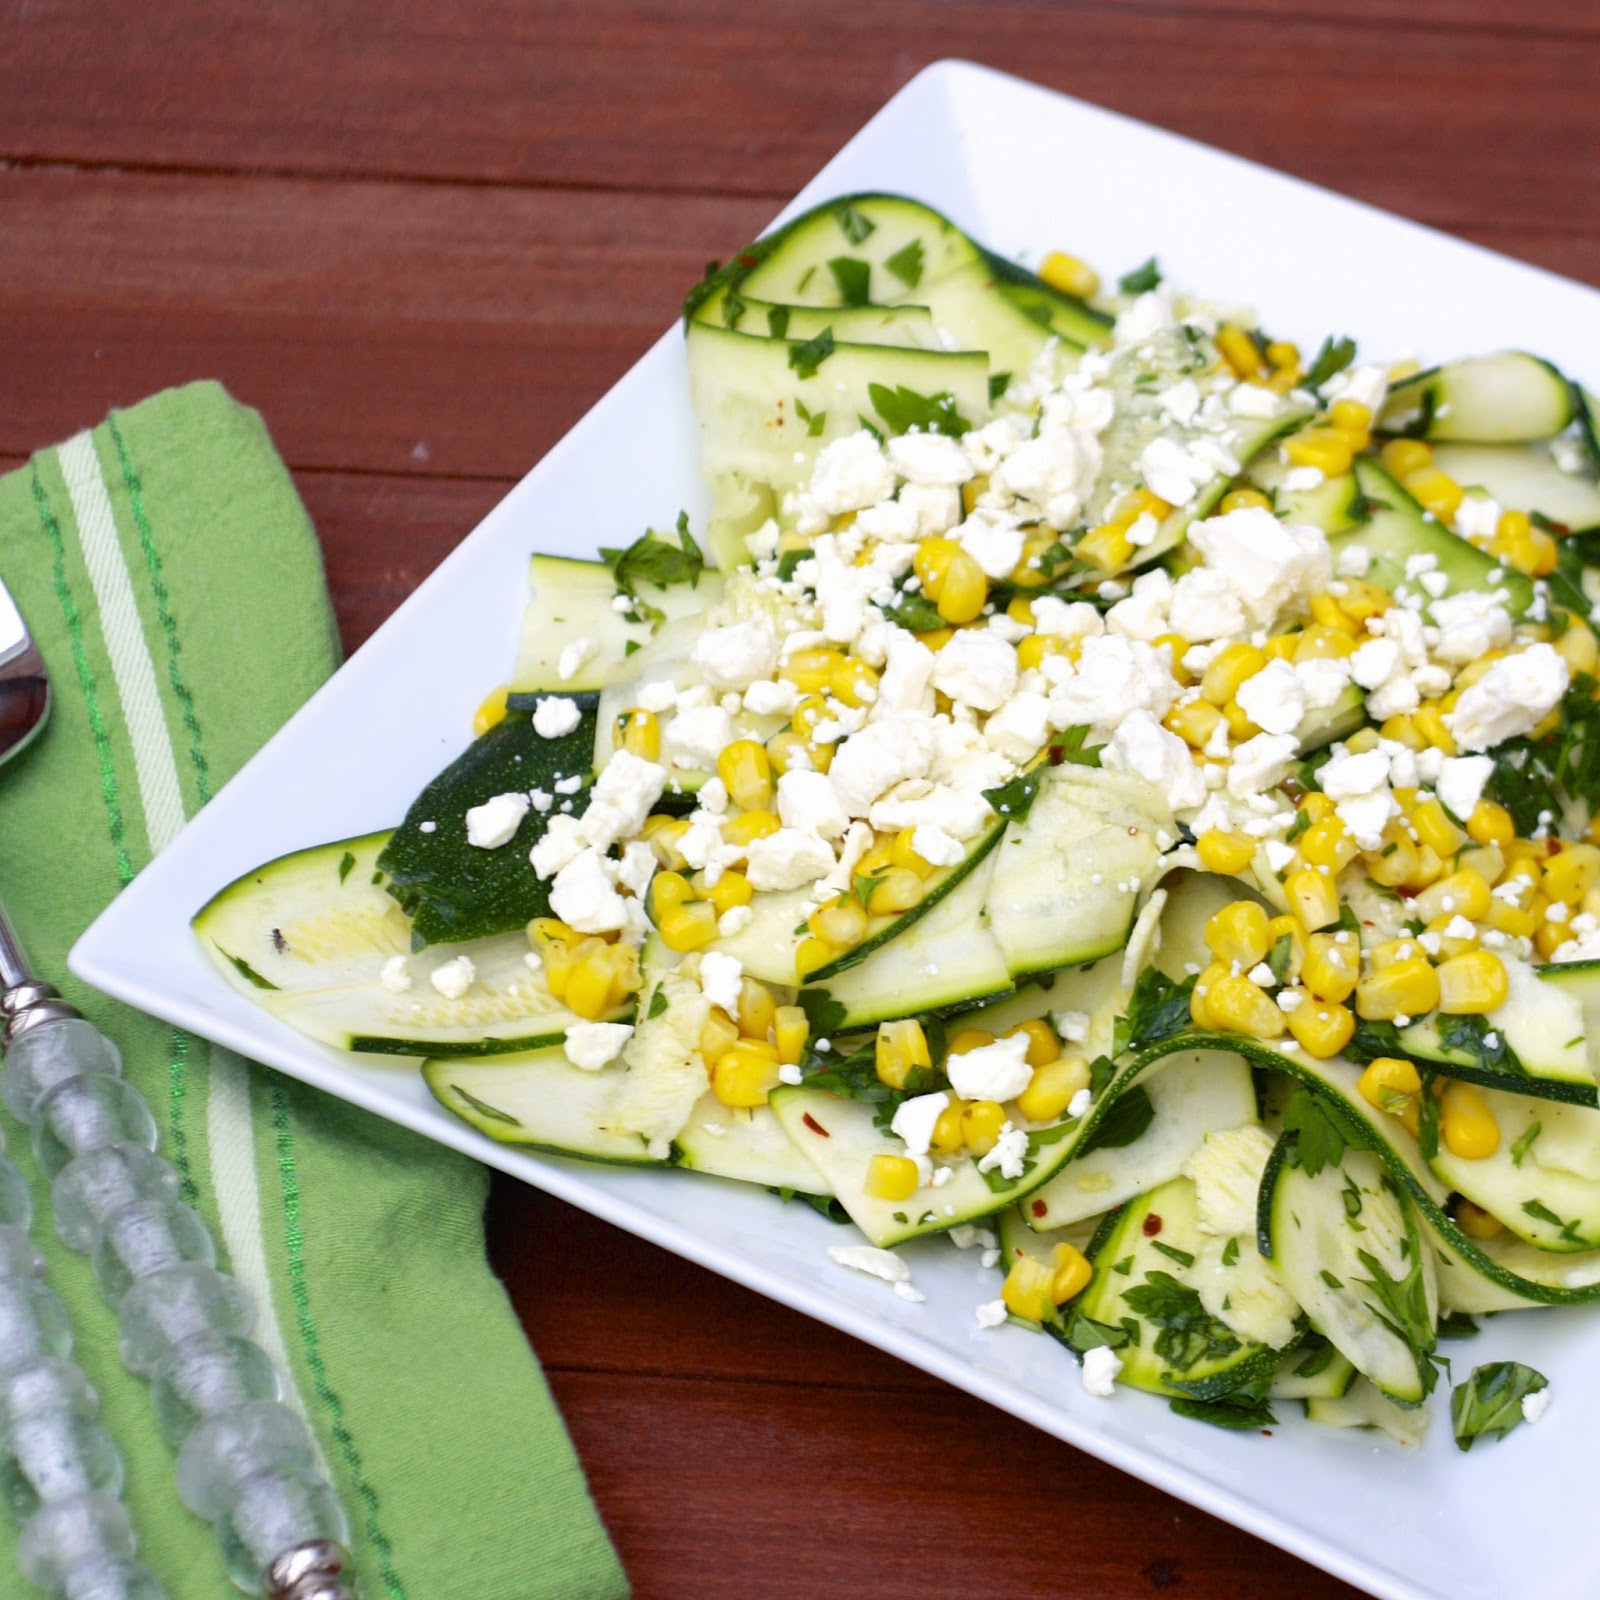 Corn and Zucchini Salad with Feta | The Sweets Life